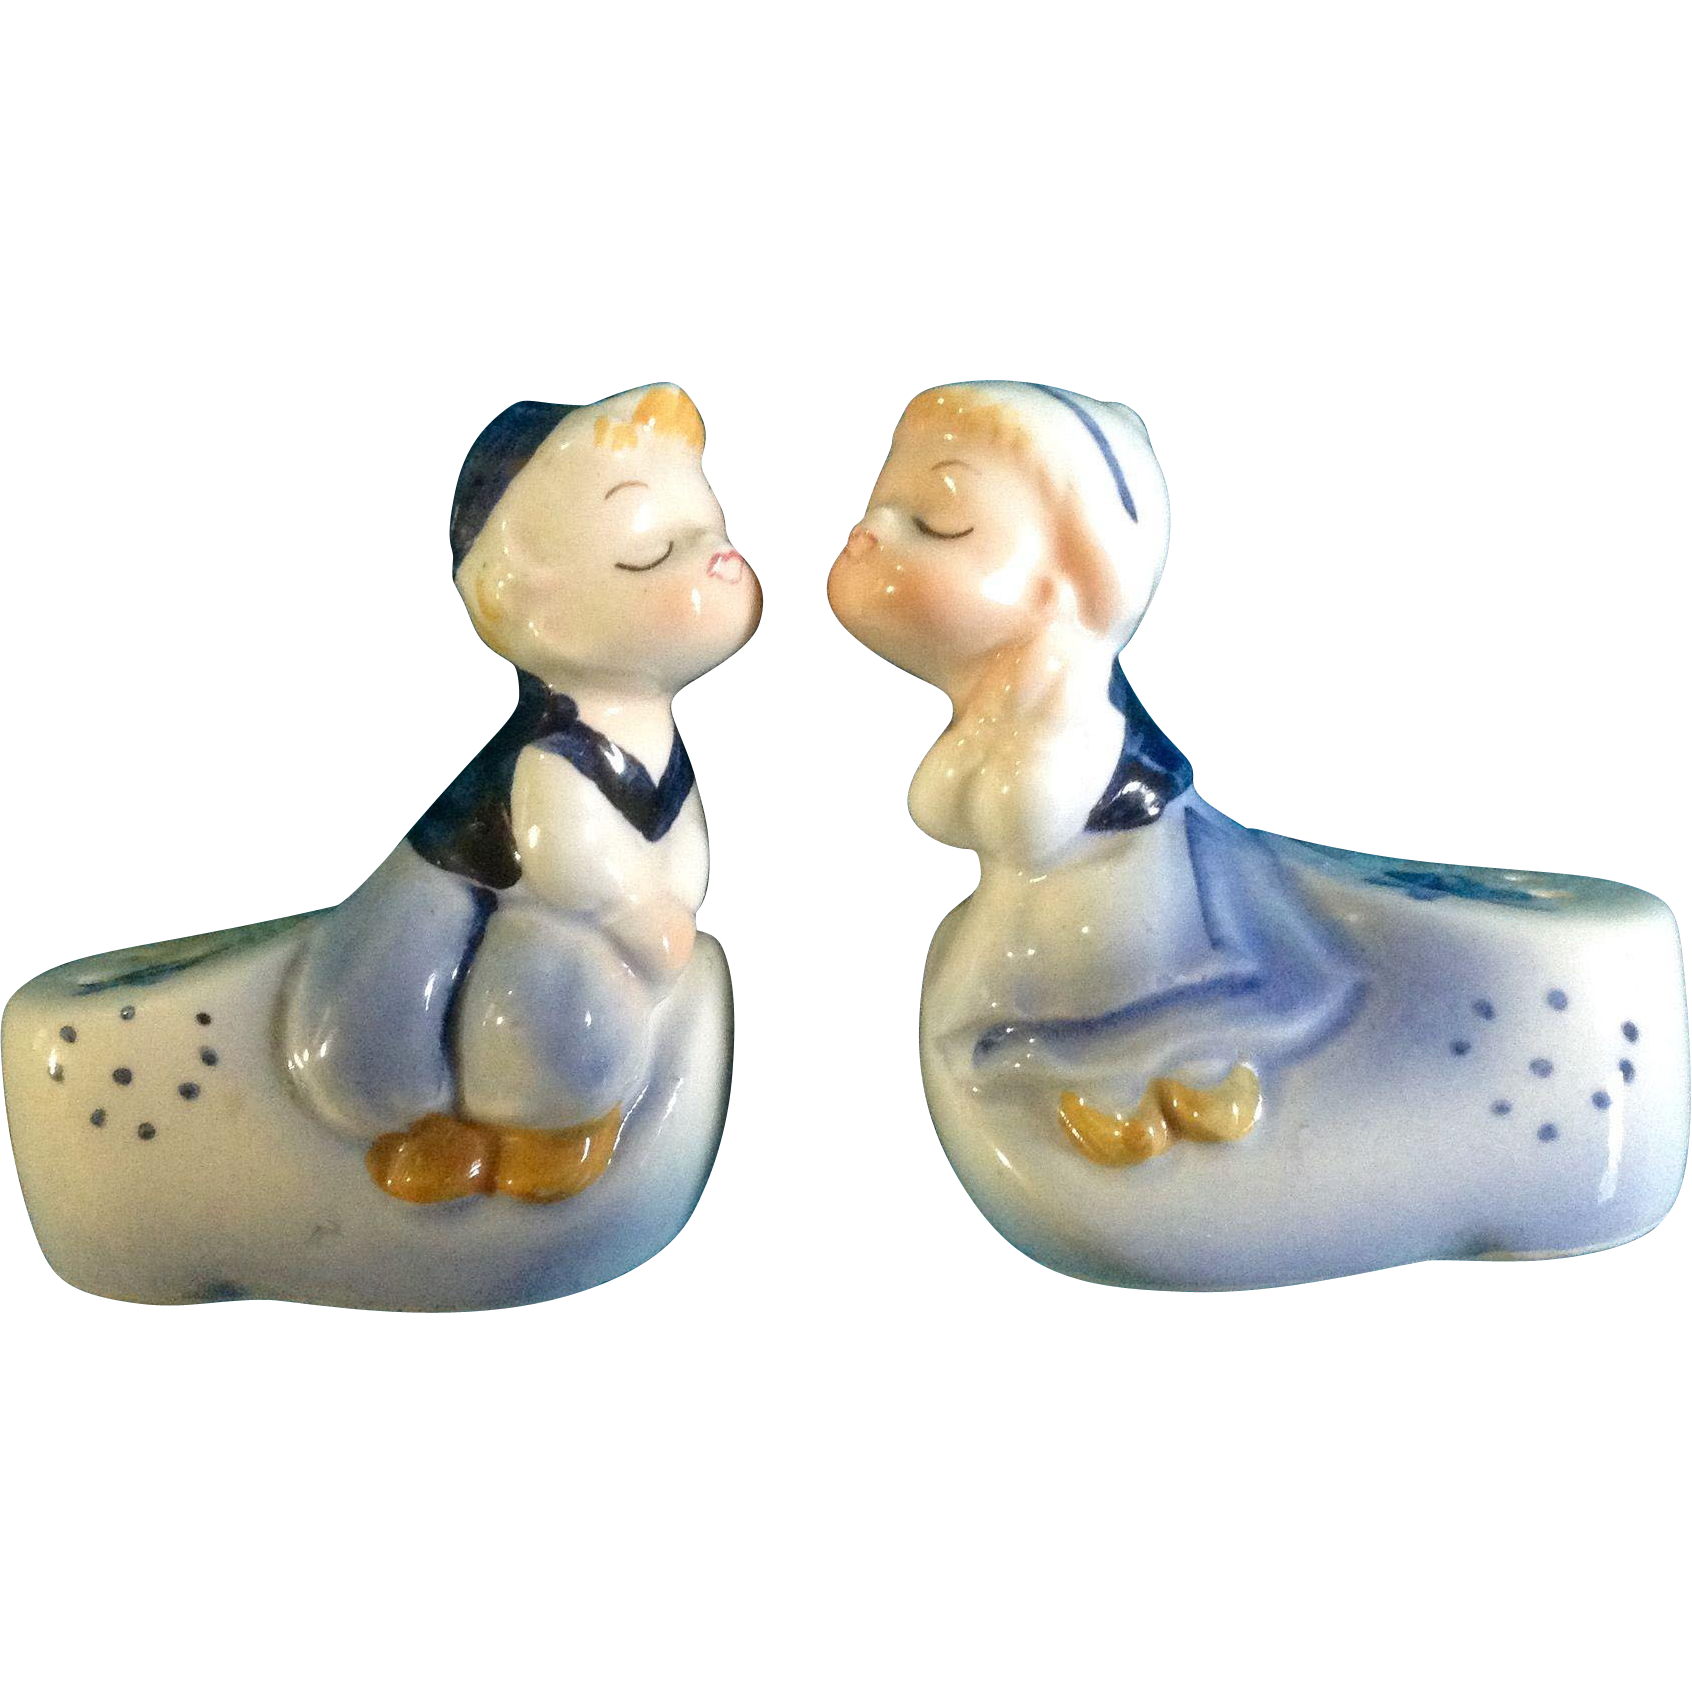 salt  pepper shakers dutch boy kissing girl by adriane made in  - salt  pepper shakers dutch boy kissing girl by adriane made in japane retro midcentury vintage hand painted